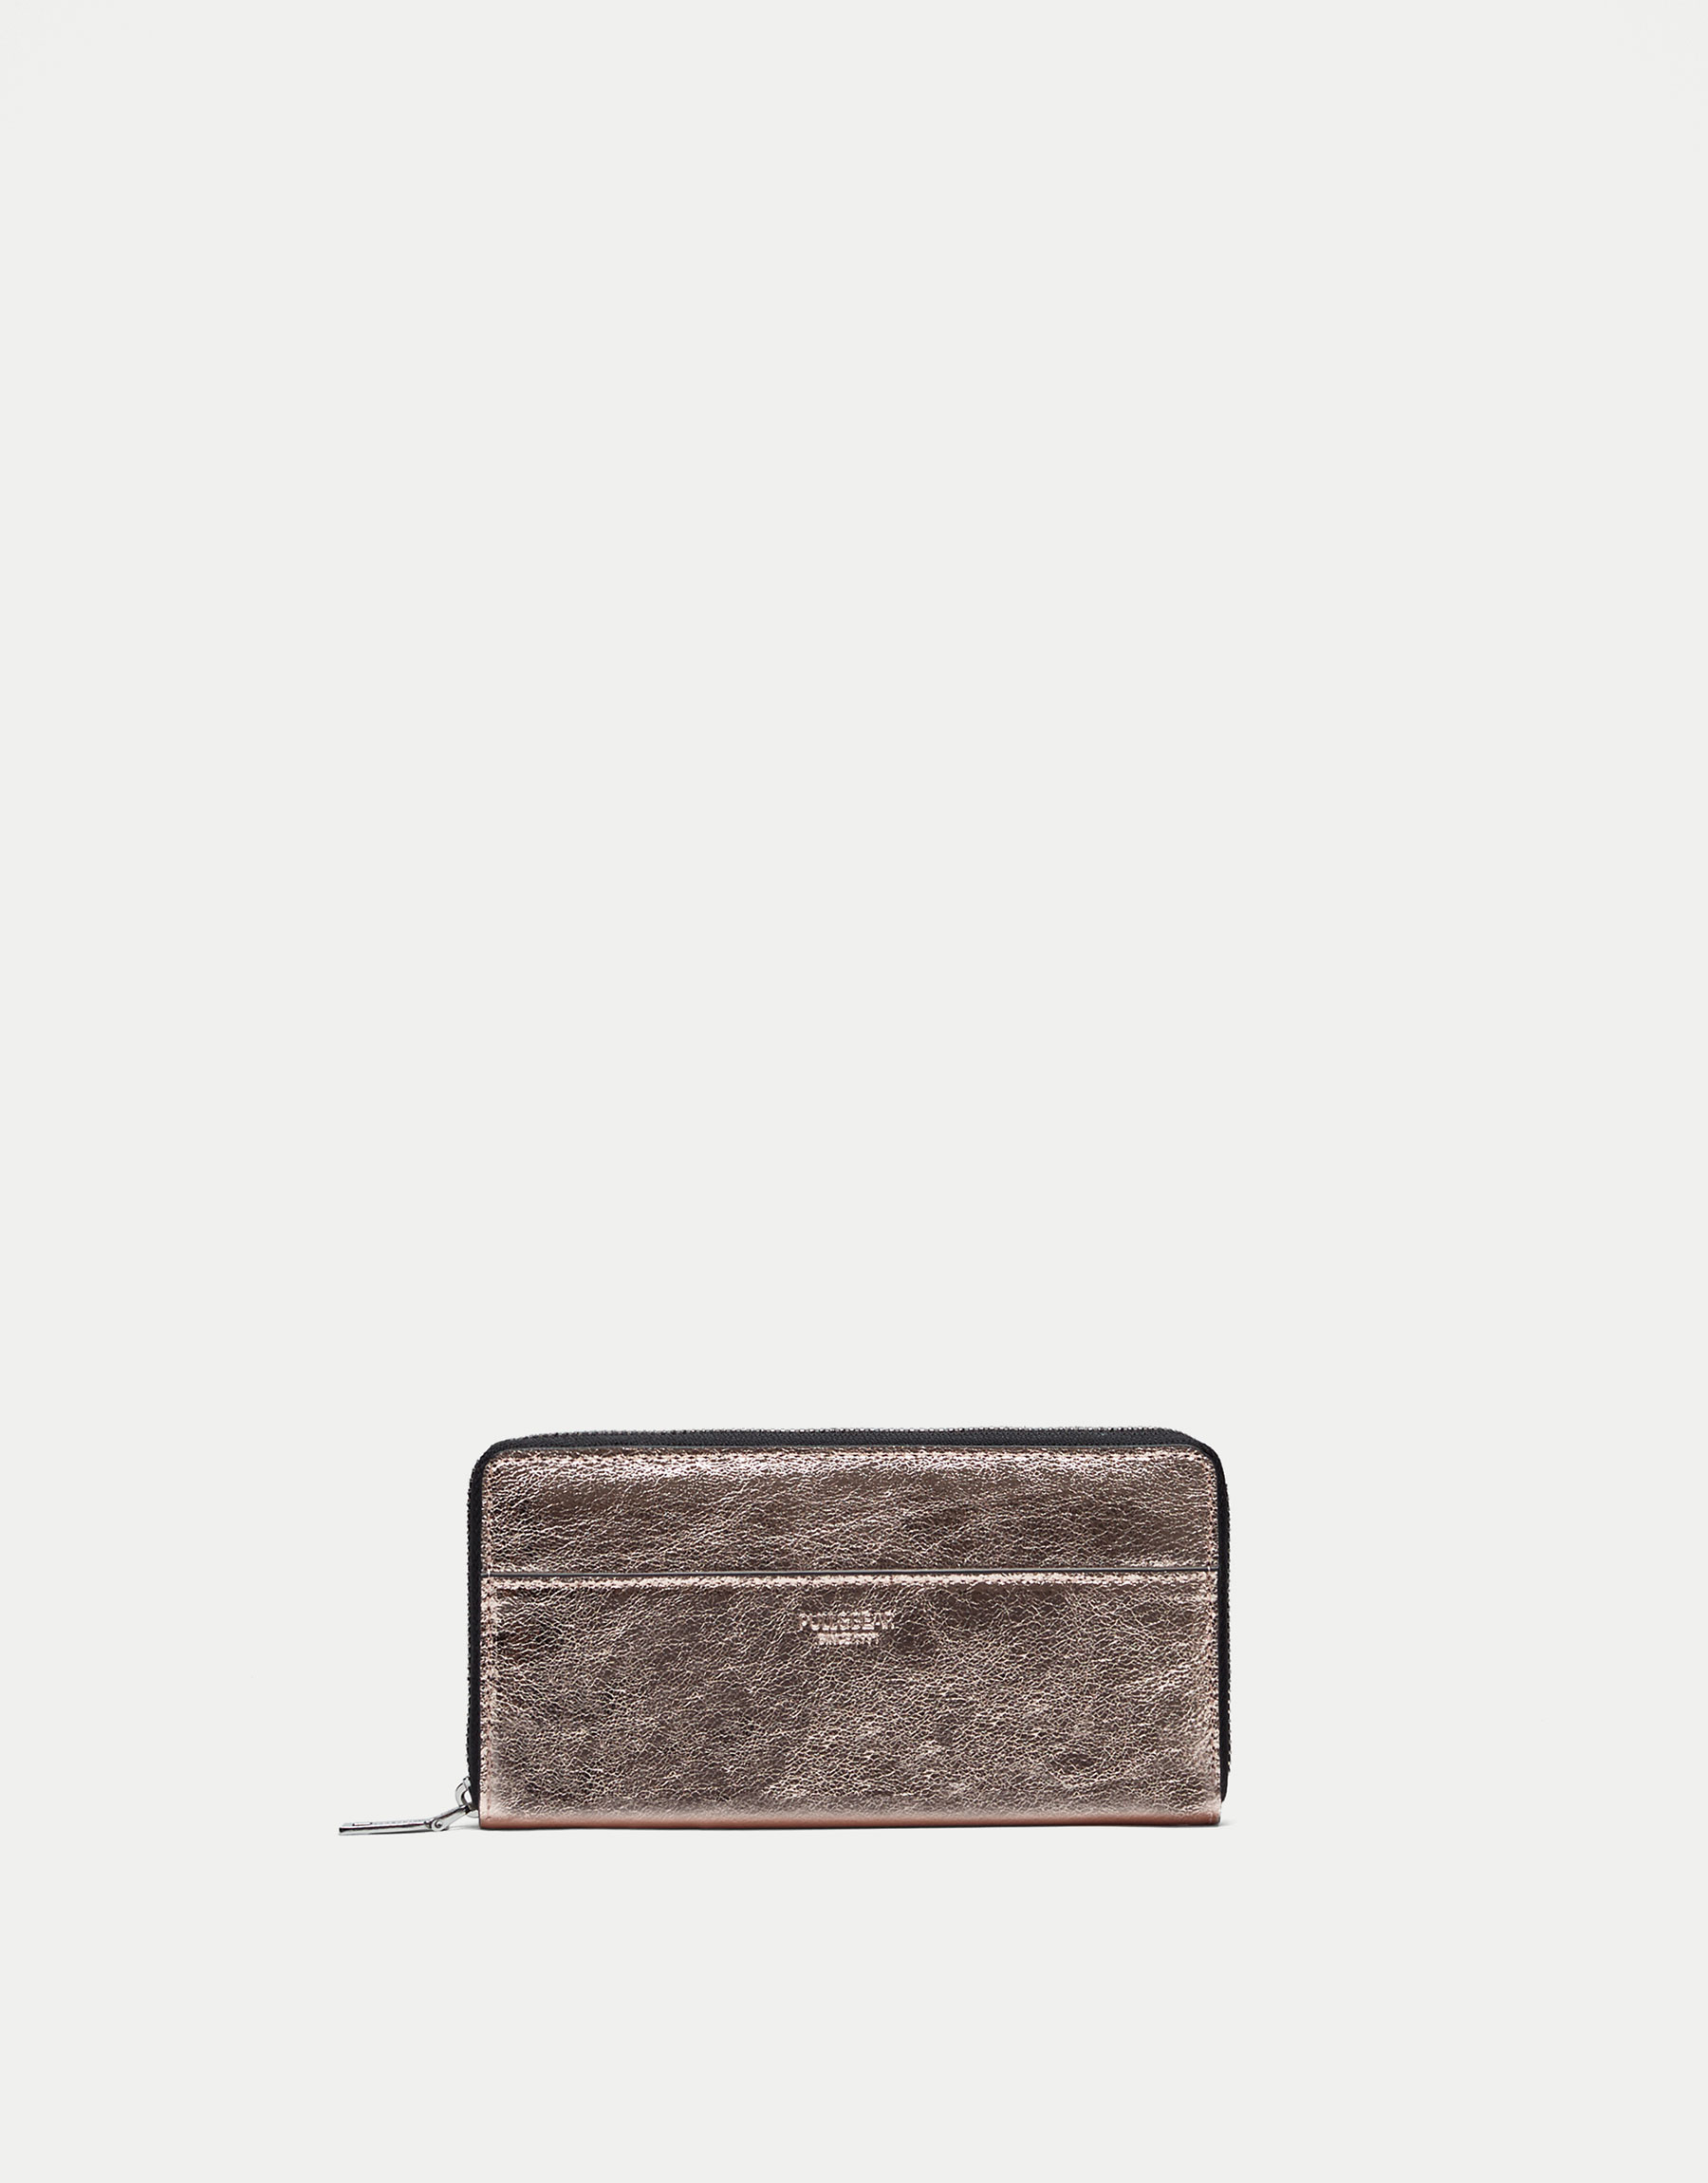 Metallic wallet with crackled effect